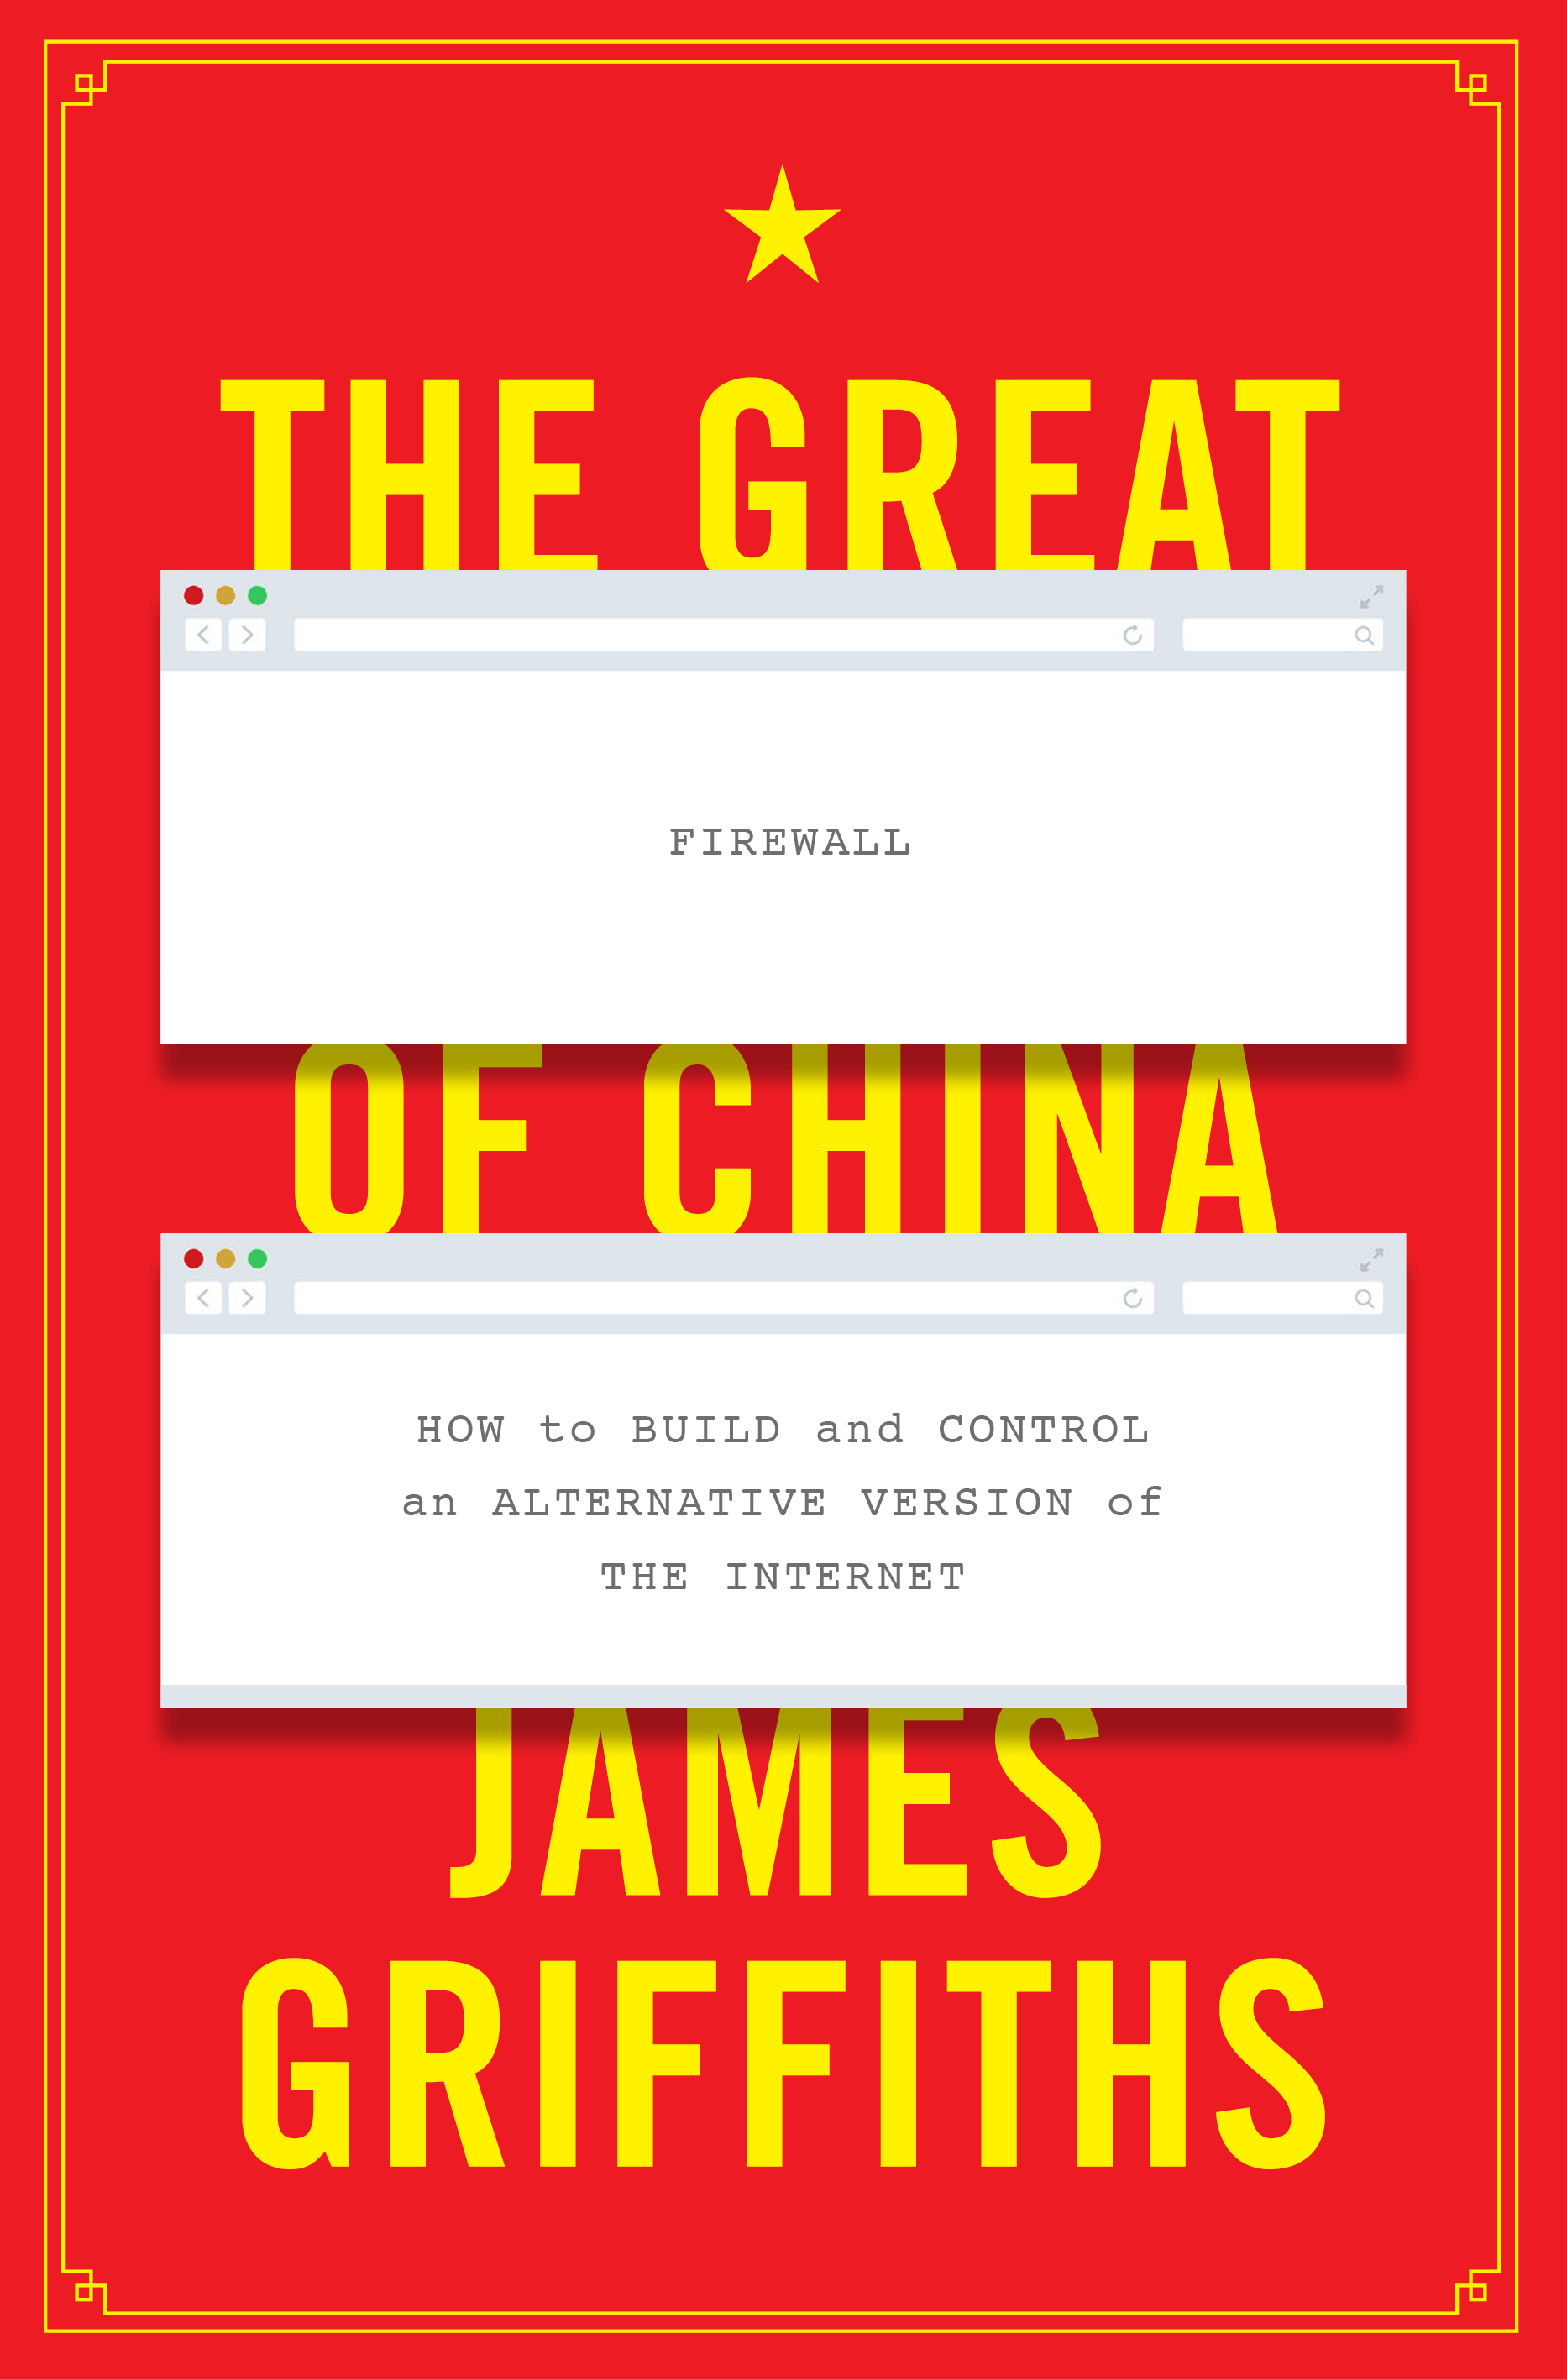 Griffiths_Great Firewall of China-HiRes-RGB.jpg